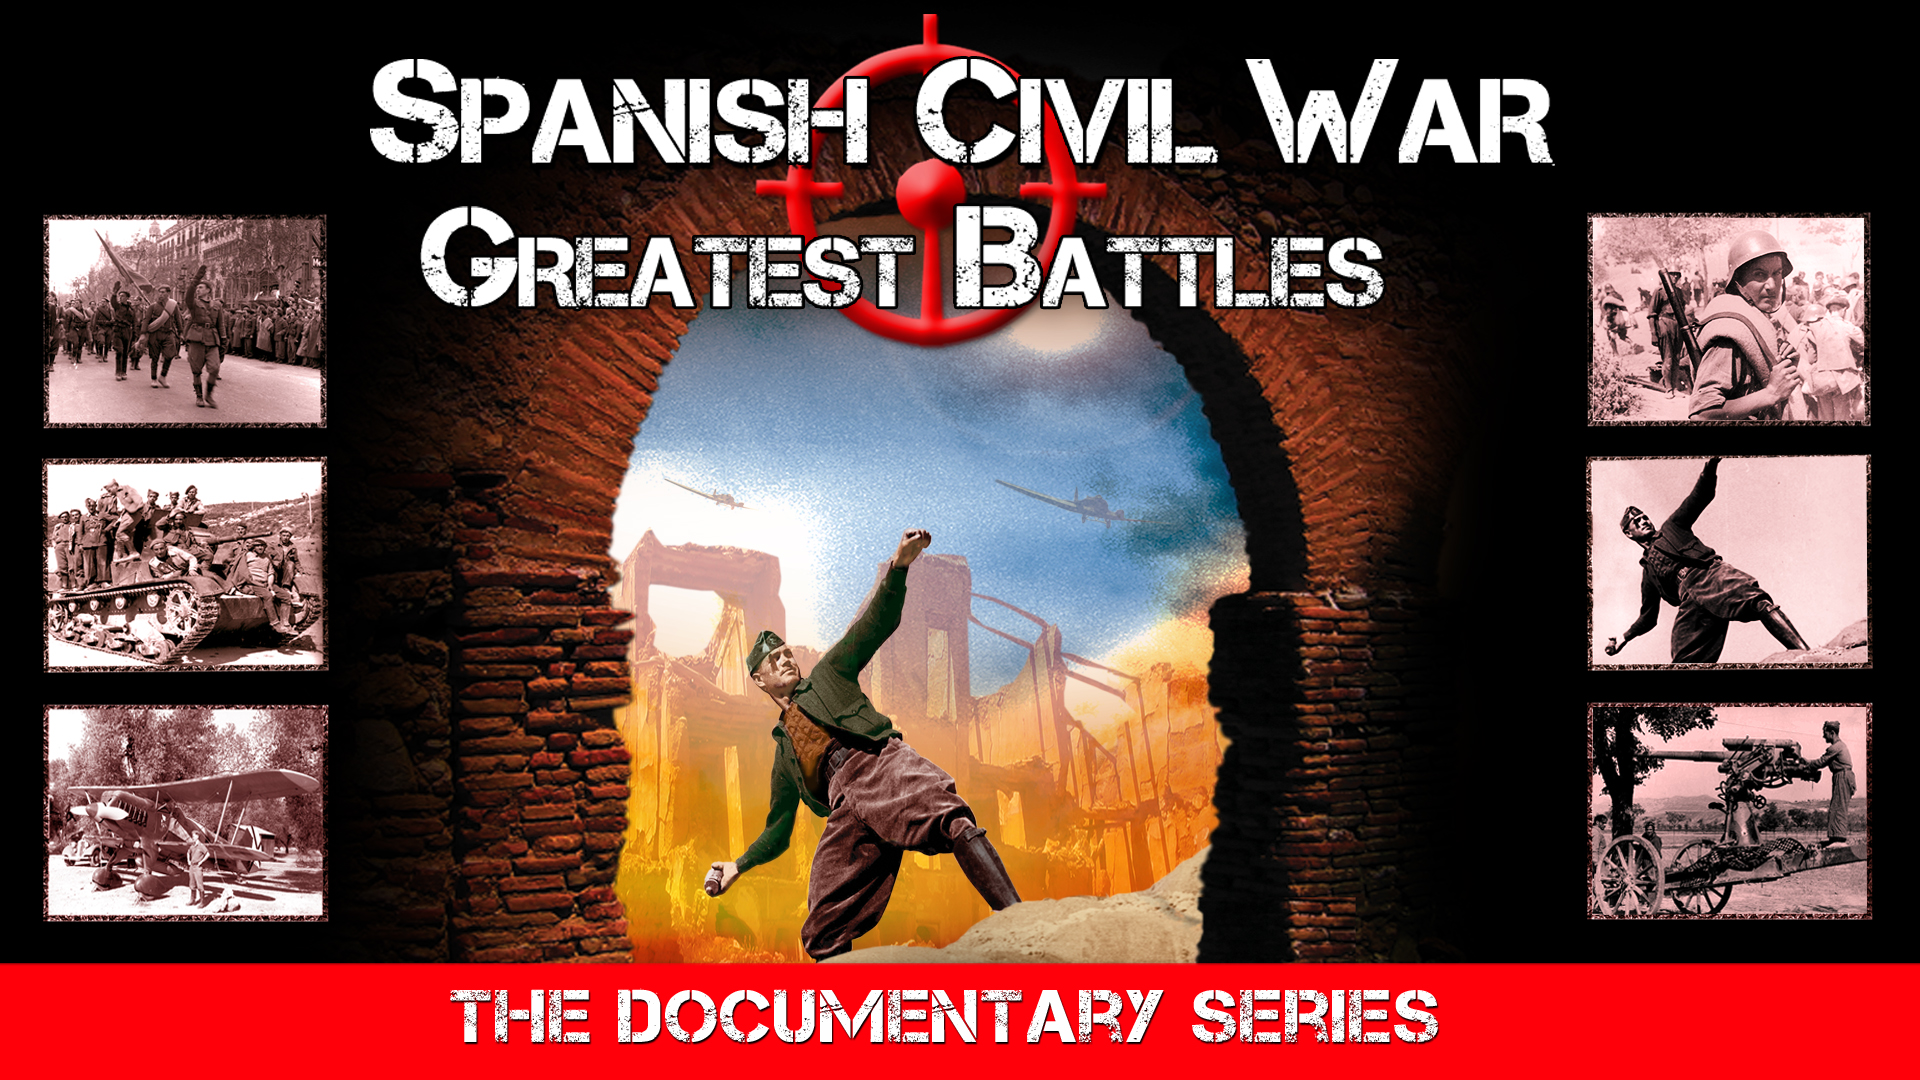 Spanish civil war greatest battles